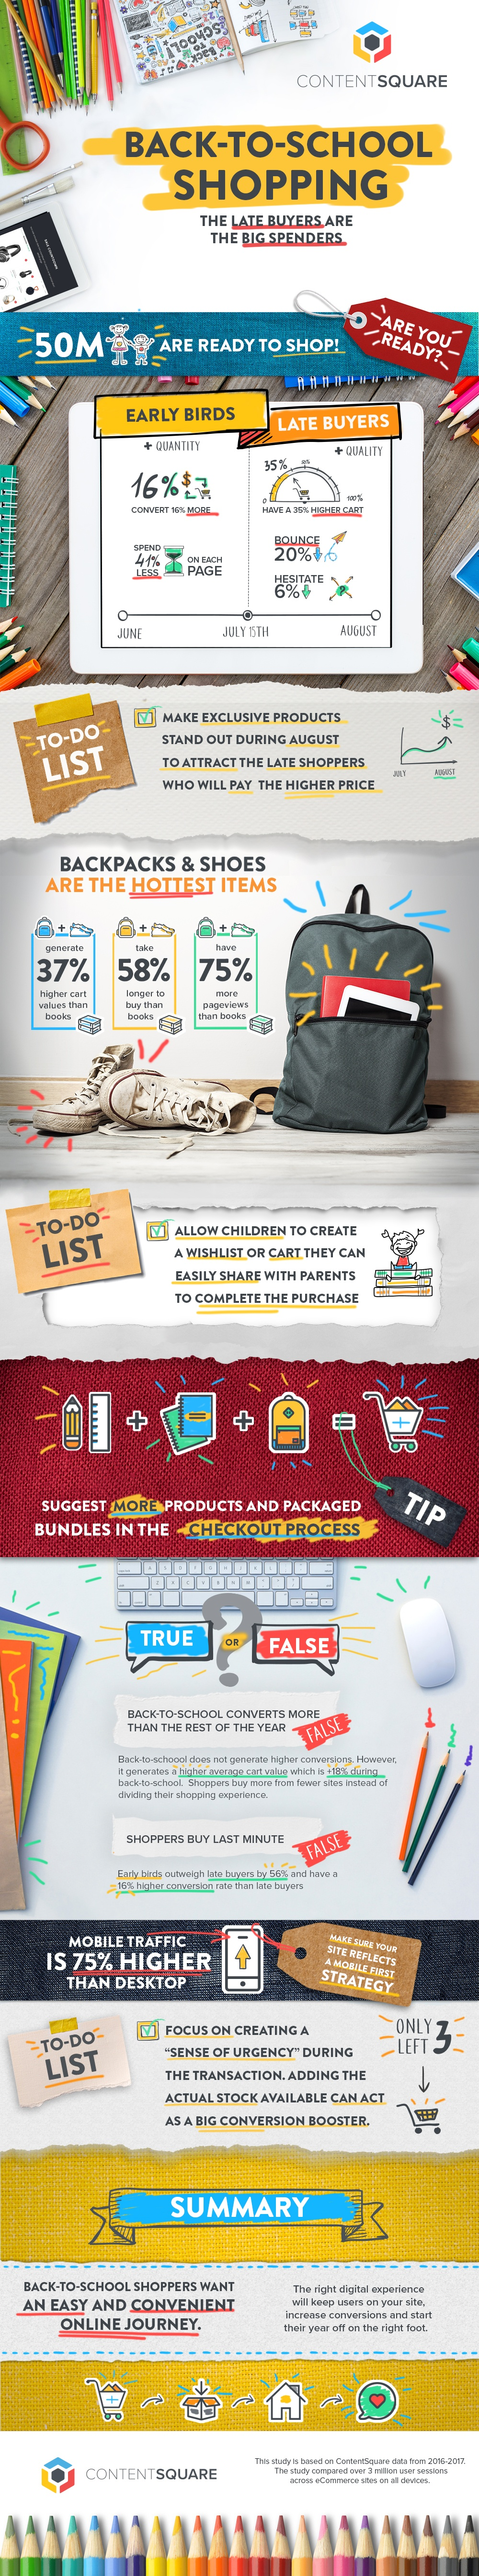 Back-to-School Infographic from ContentSquare.jpg